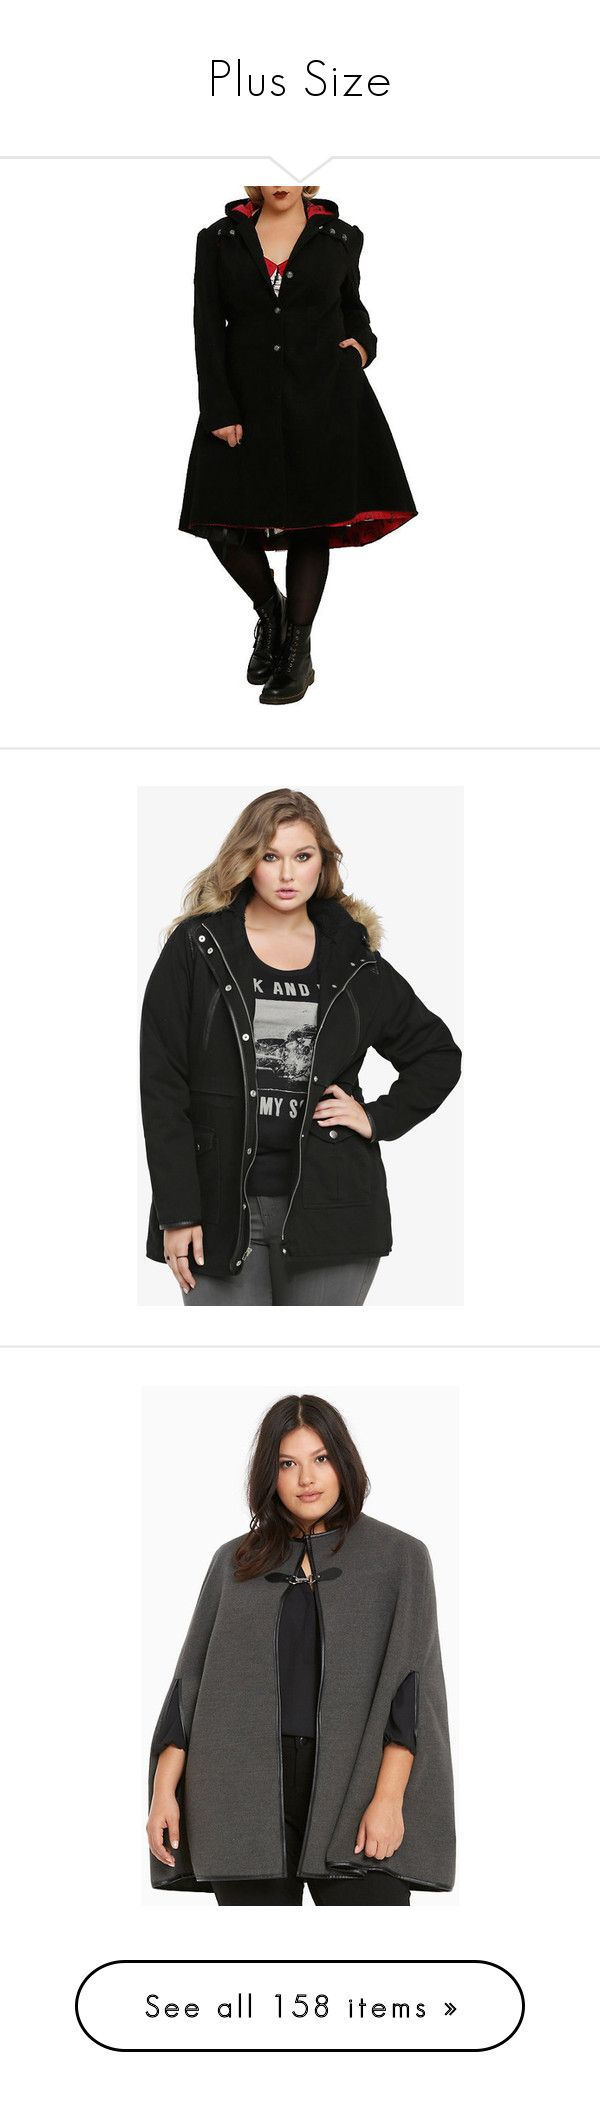 """""""Plus Size"""" by chrissy-cdm ❤ liked on Polyvore featuring costumes, coven halloween costumes, american halloween costumes, horror costumes, womens plus costumes, salem witch costume, plus size women's fashion, plus size clothing, plus size outerwear and plus size jackets"""